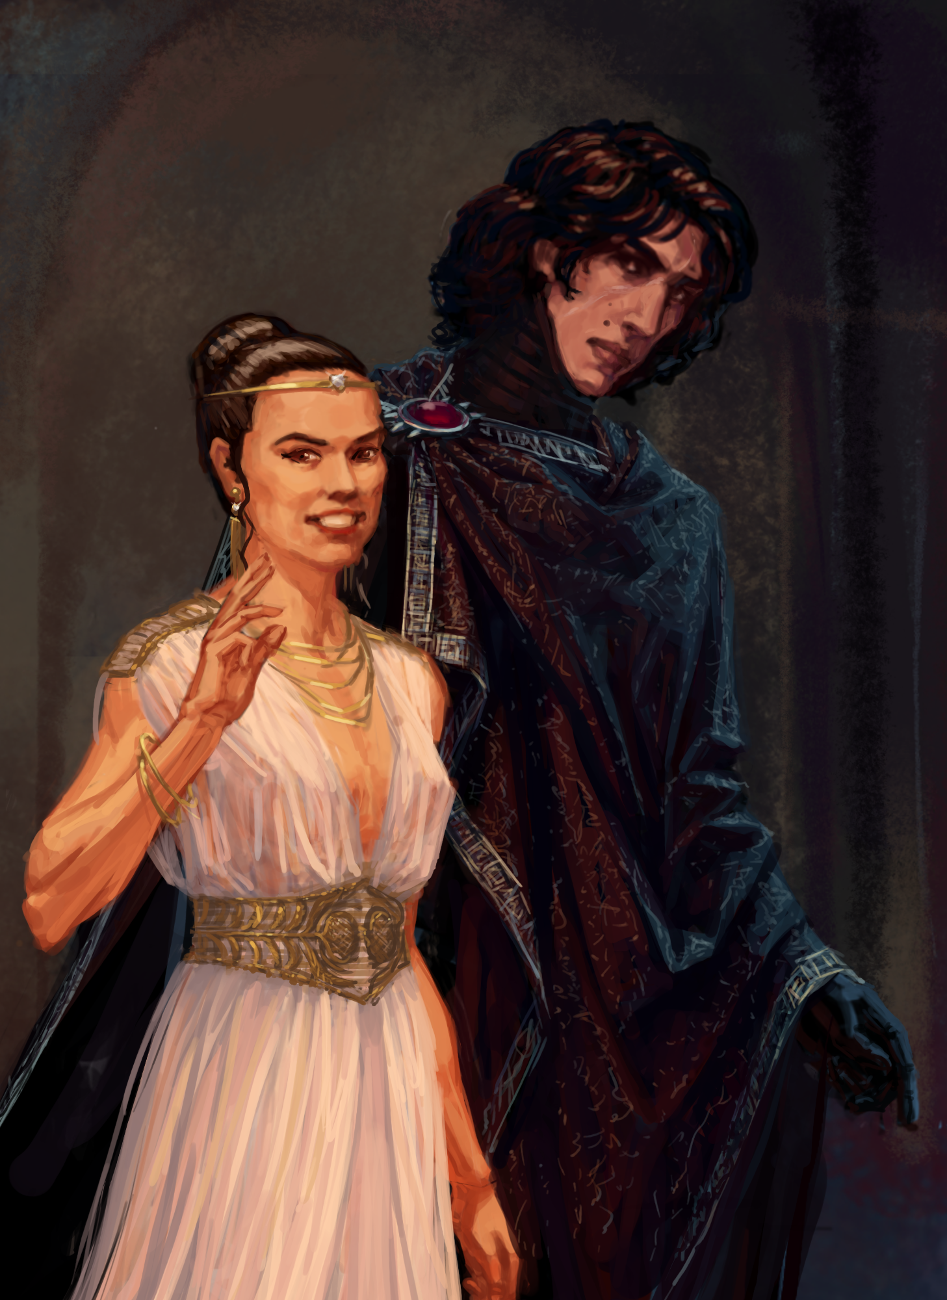 Imperial Reylo by LynxC